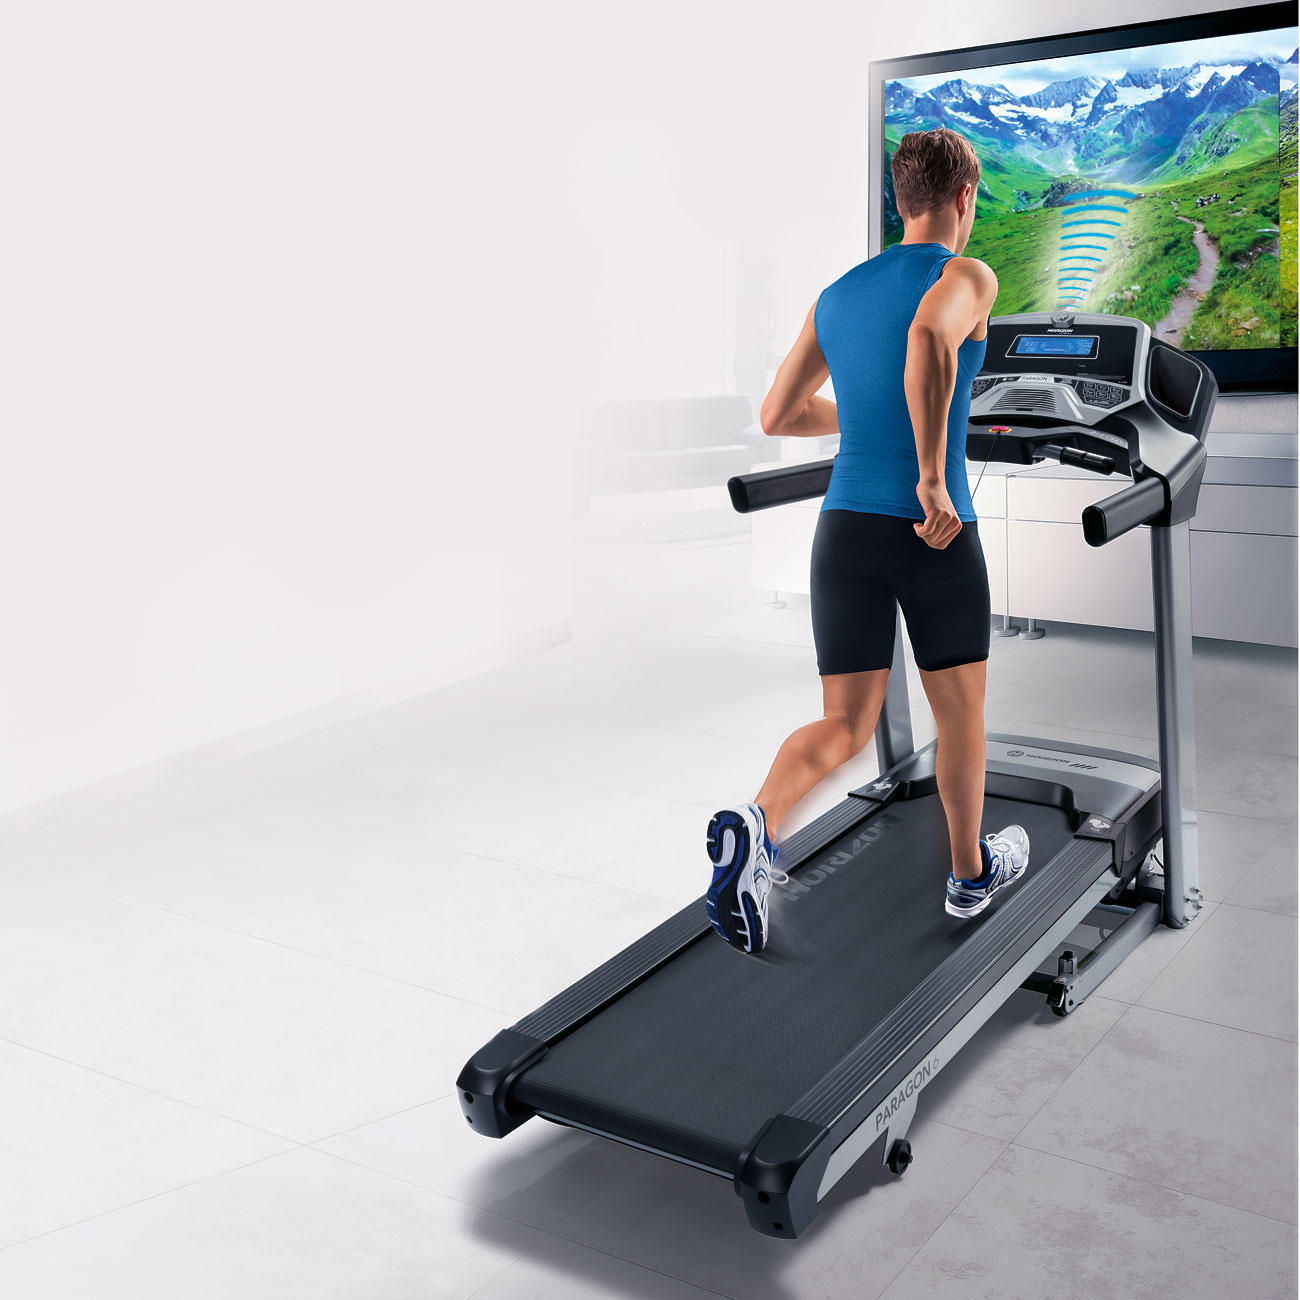 horizon fitness laufband paragon 6 inkl media player. Black Bedroom Furniture Sets. Home Design Ideas